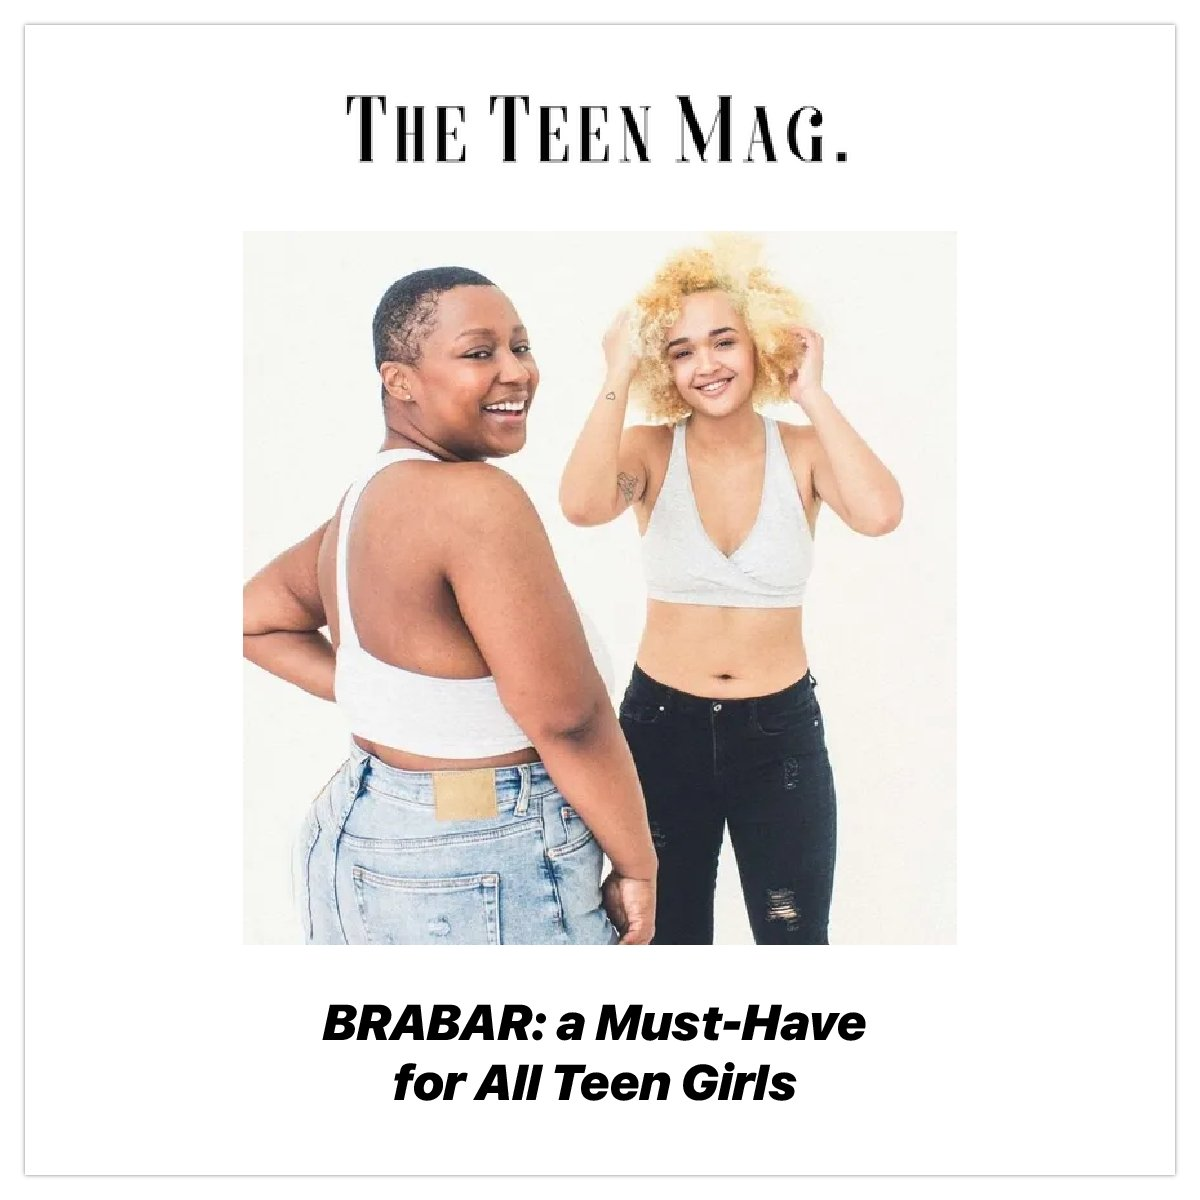 The Teen Mag